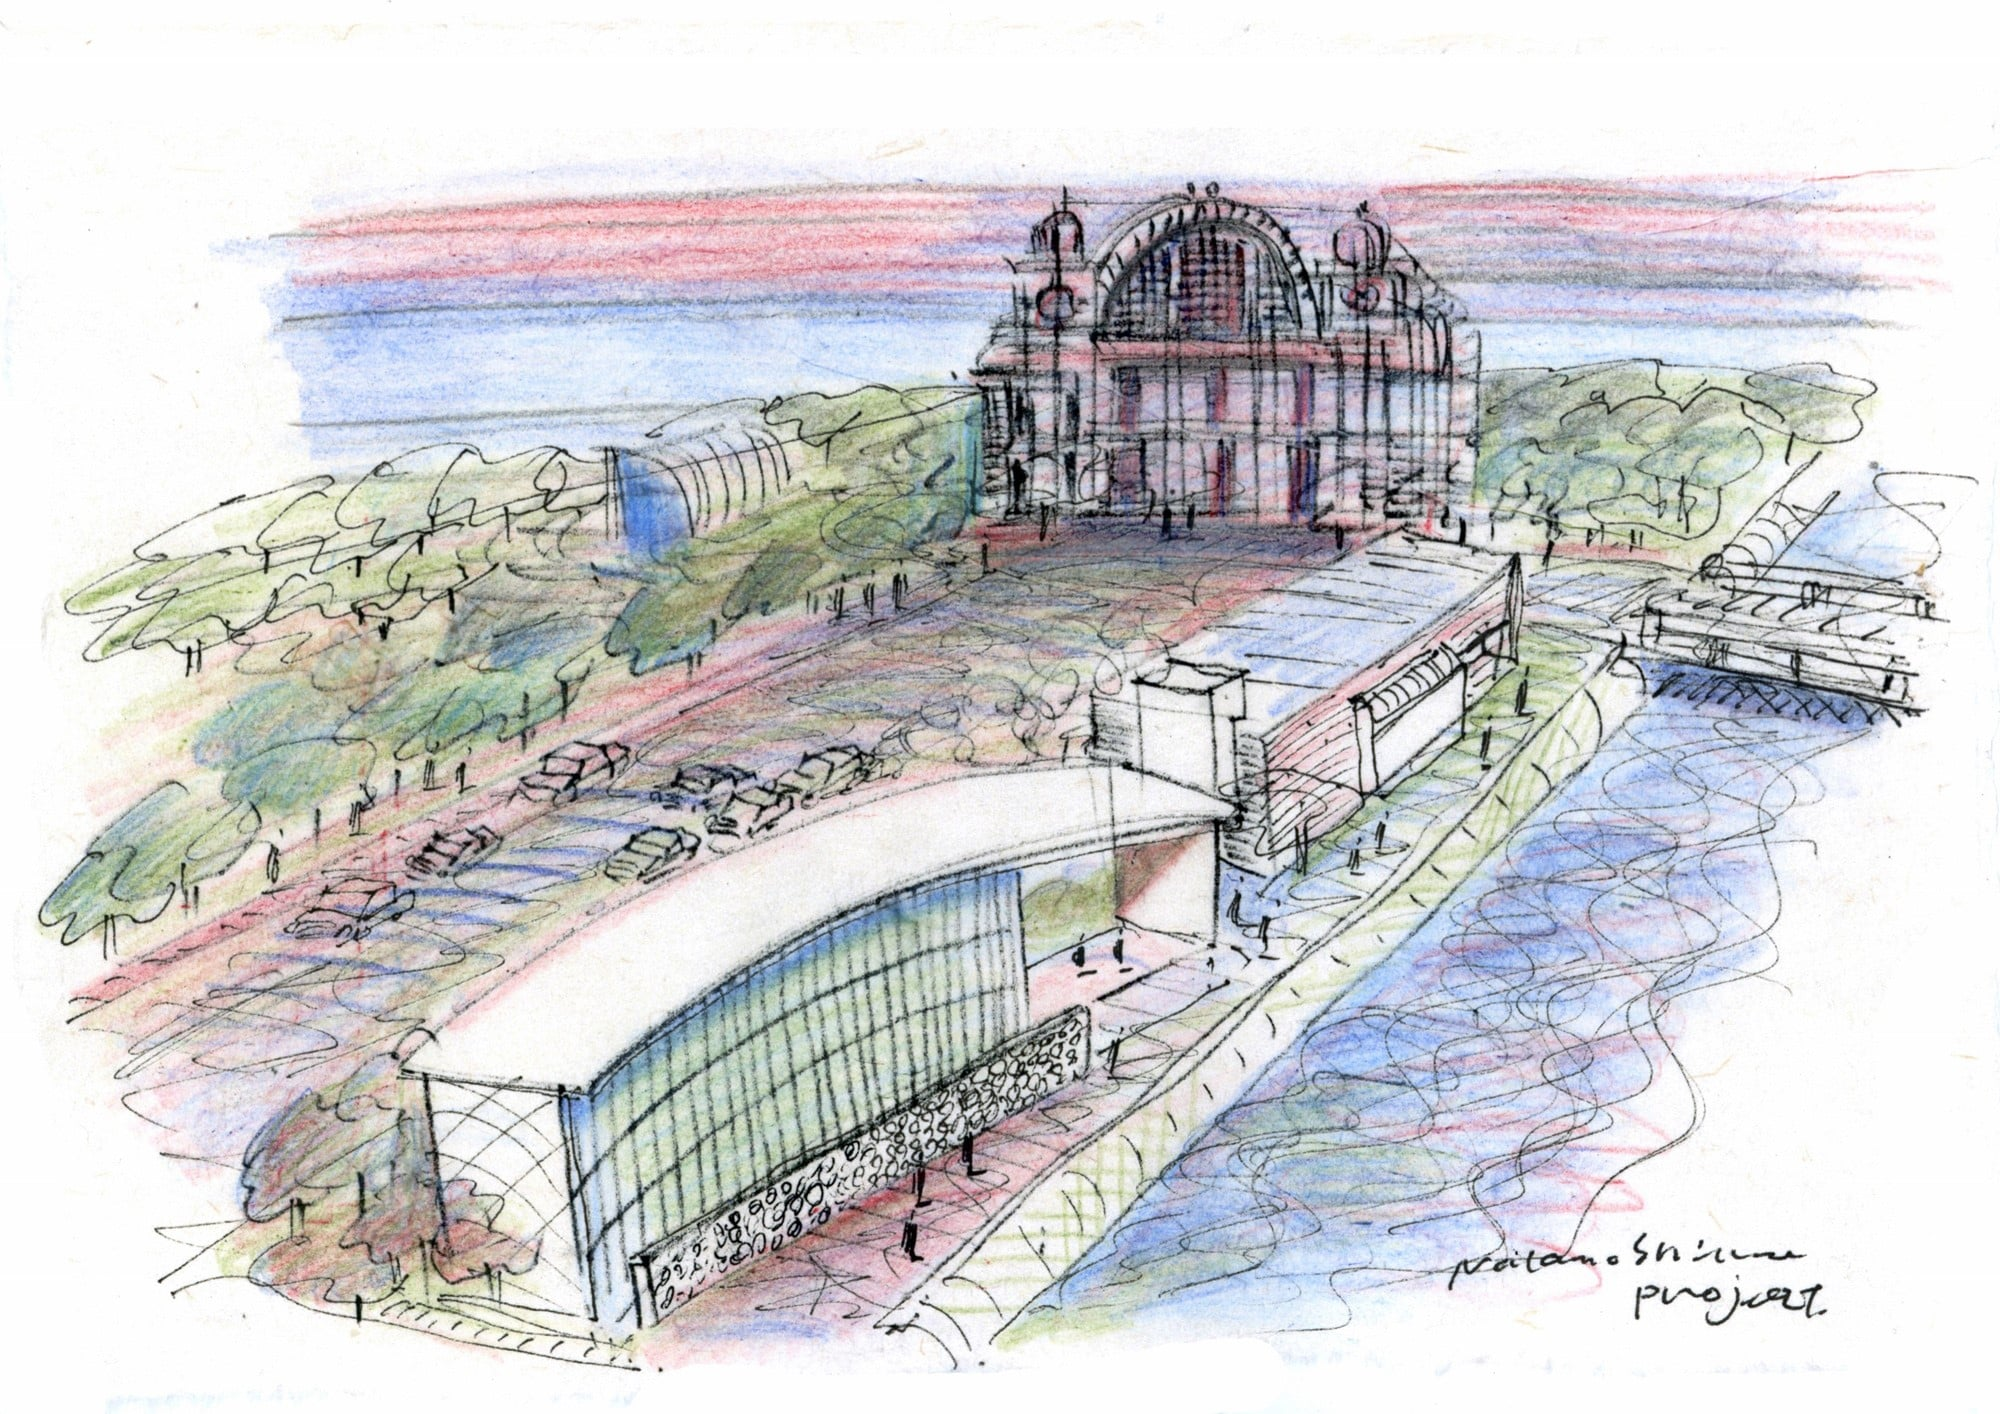 The drawing of Nakanoshima Children's Book Forest, which is scheduled to open in March  of 2020. Ando himself designed the book forest and donated to Osaka City. He is concerned about the children who are missing the opportunity to read books, and he strongly wishes that they can become familiar with books to develop their expression, imagination and determination. © TADAO ANDO ARCHITECT & ASSOCIATES